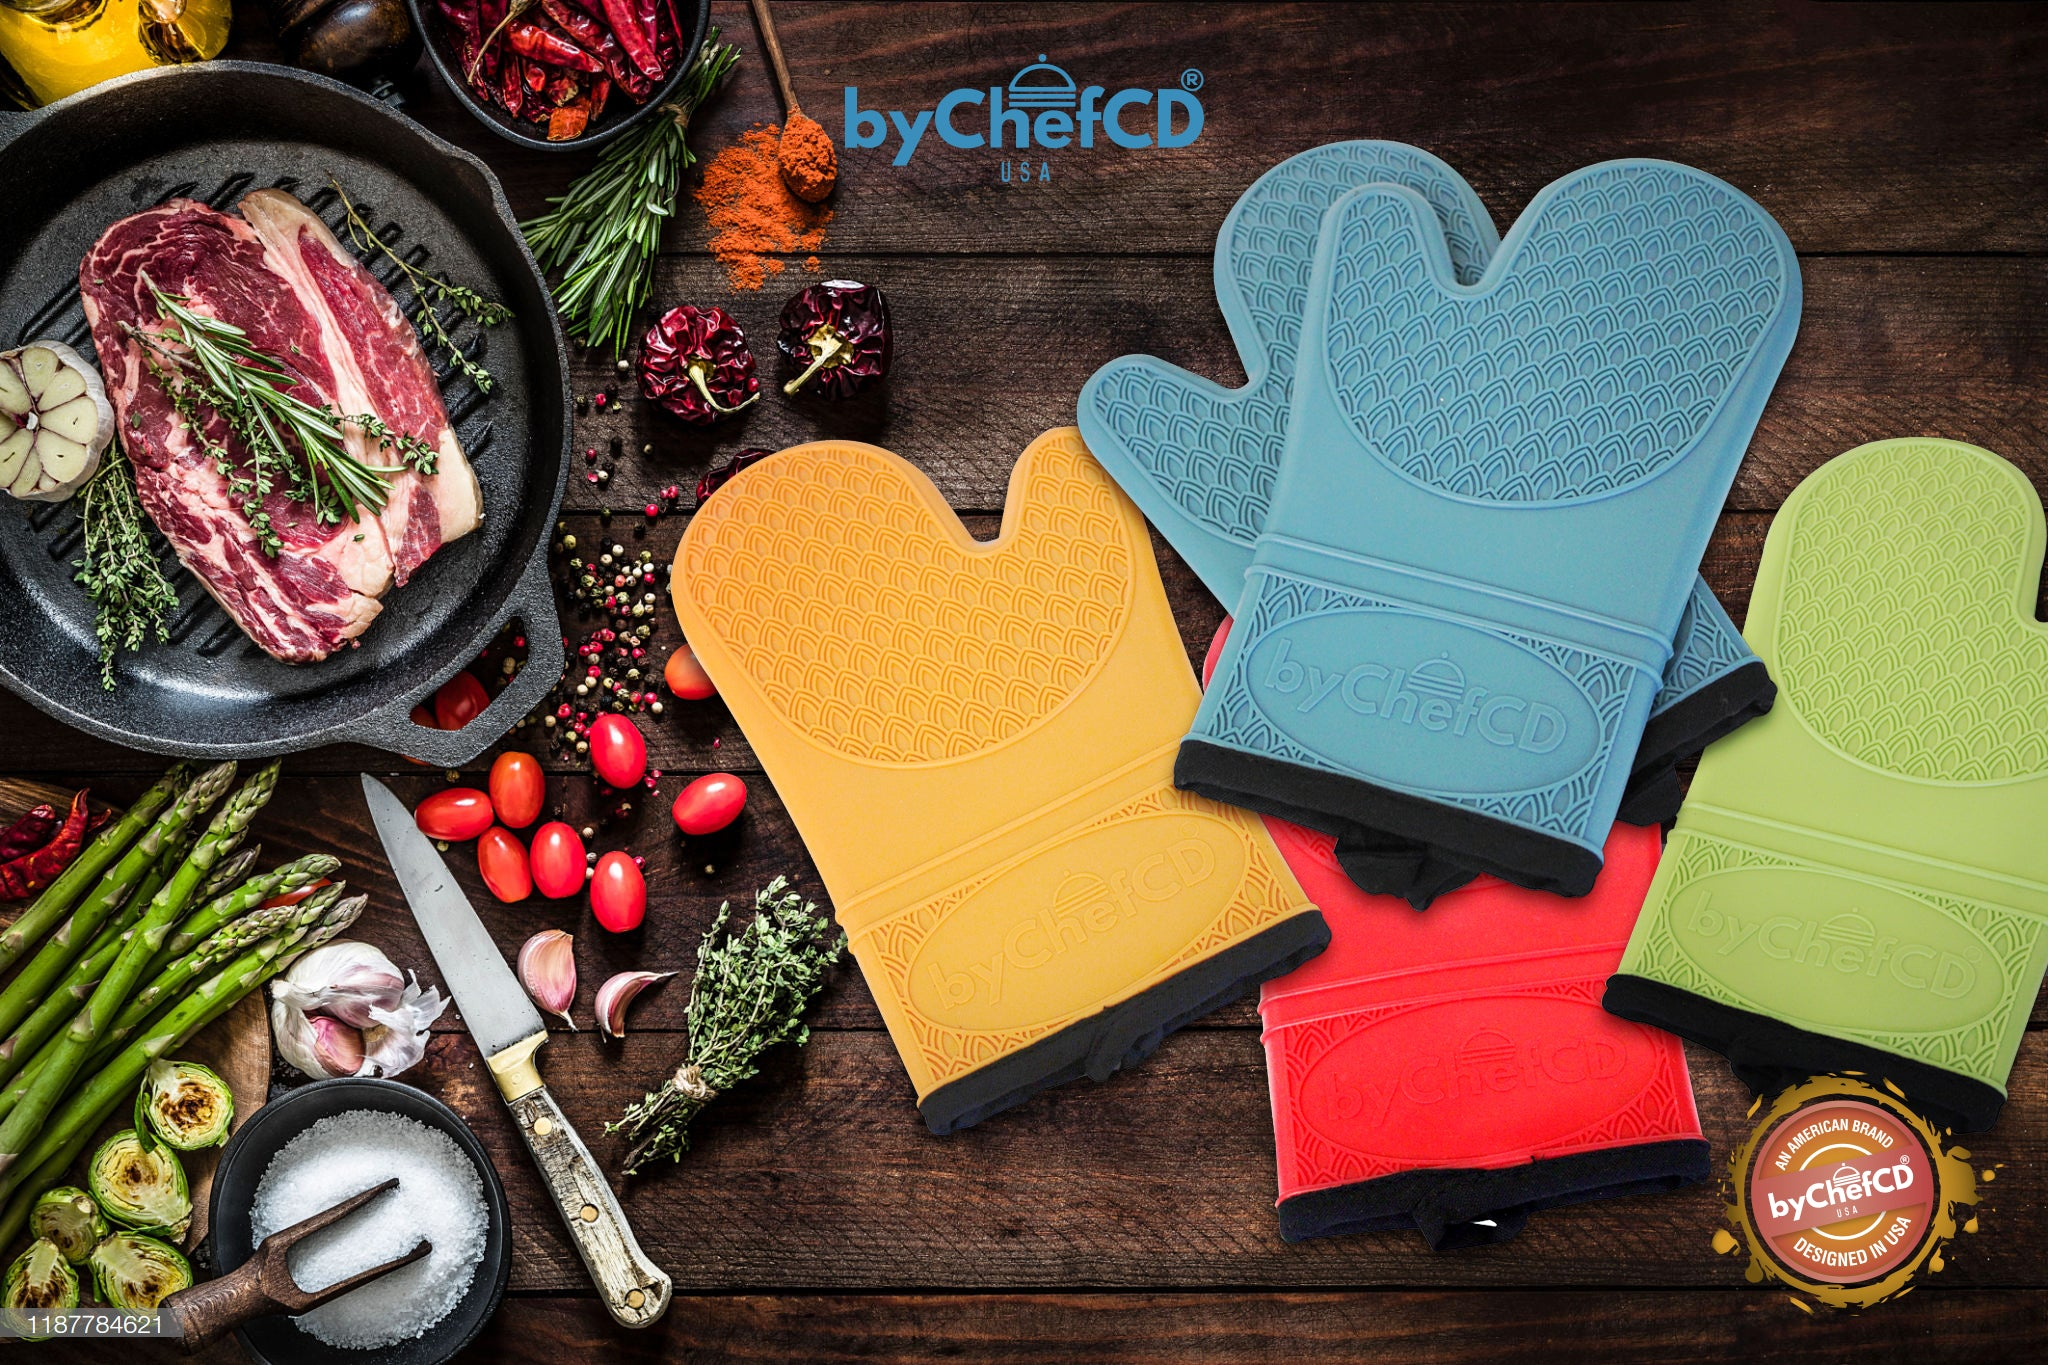 Professional Silicone Oven Mitts - Non-Slip Gloves, Kitchen Potholders, Heat Resistant Grill Mitts - ByChefCd Cooking products seller from Orlando, FL